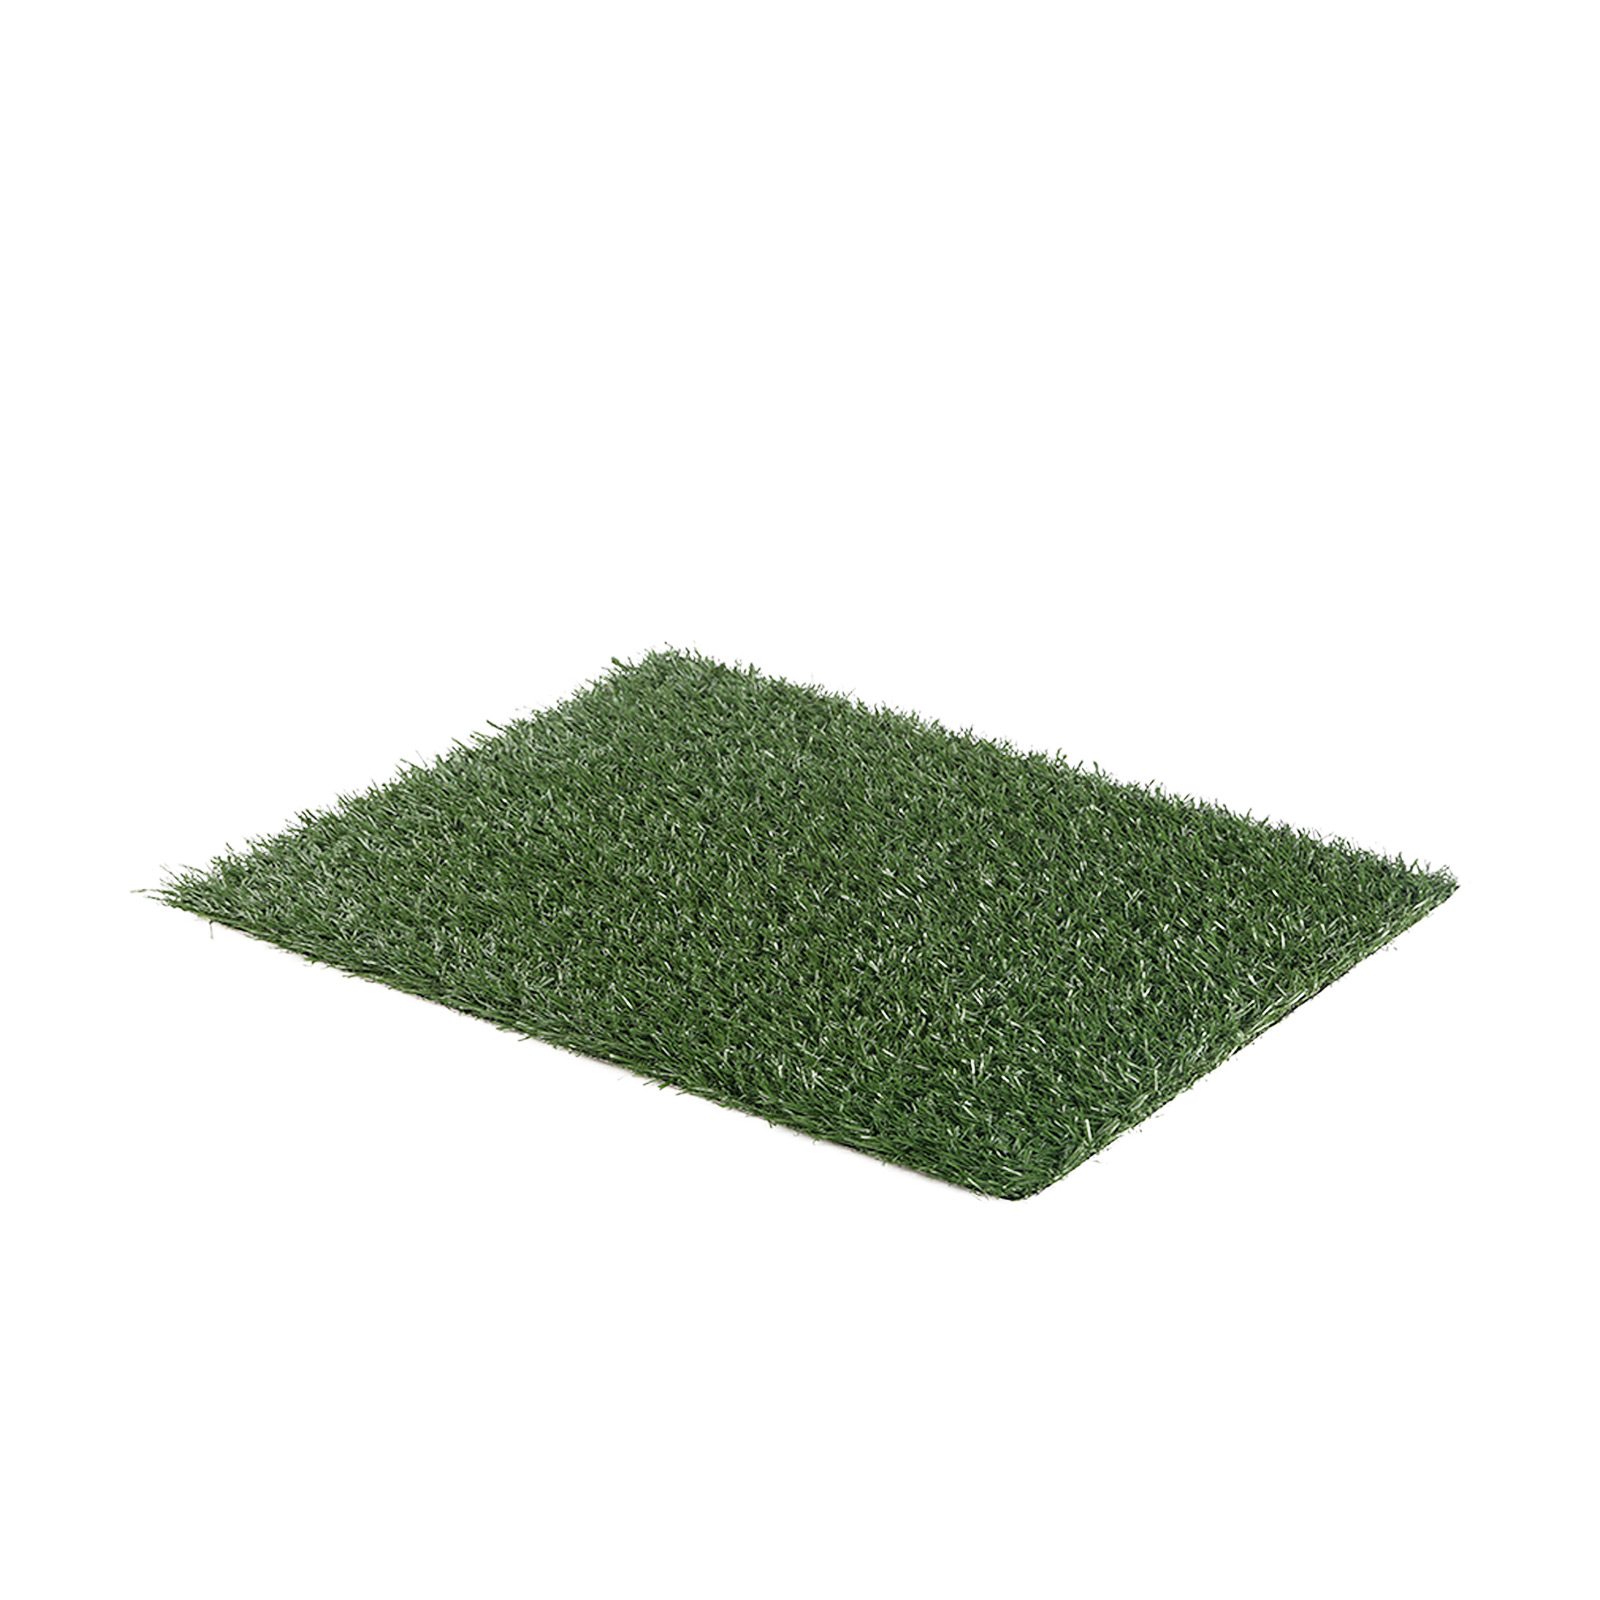 Pet Potty Training Pad Tray L 63 x 50cm - 1 Grass Mat Only